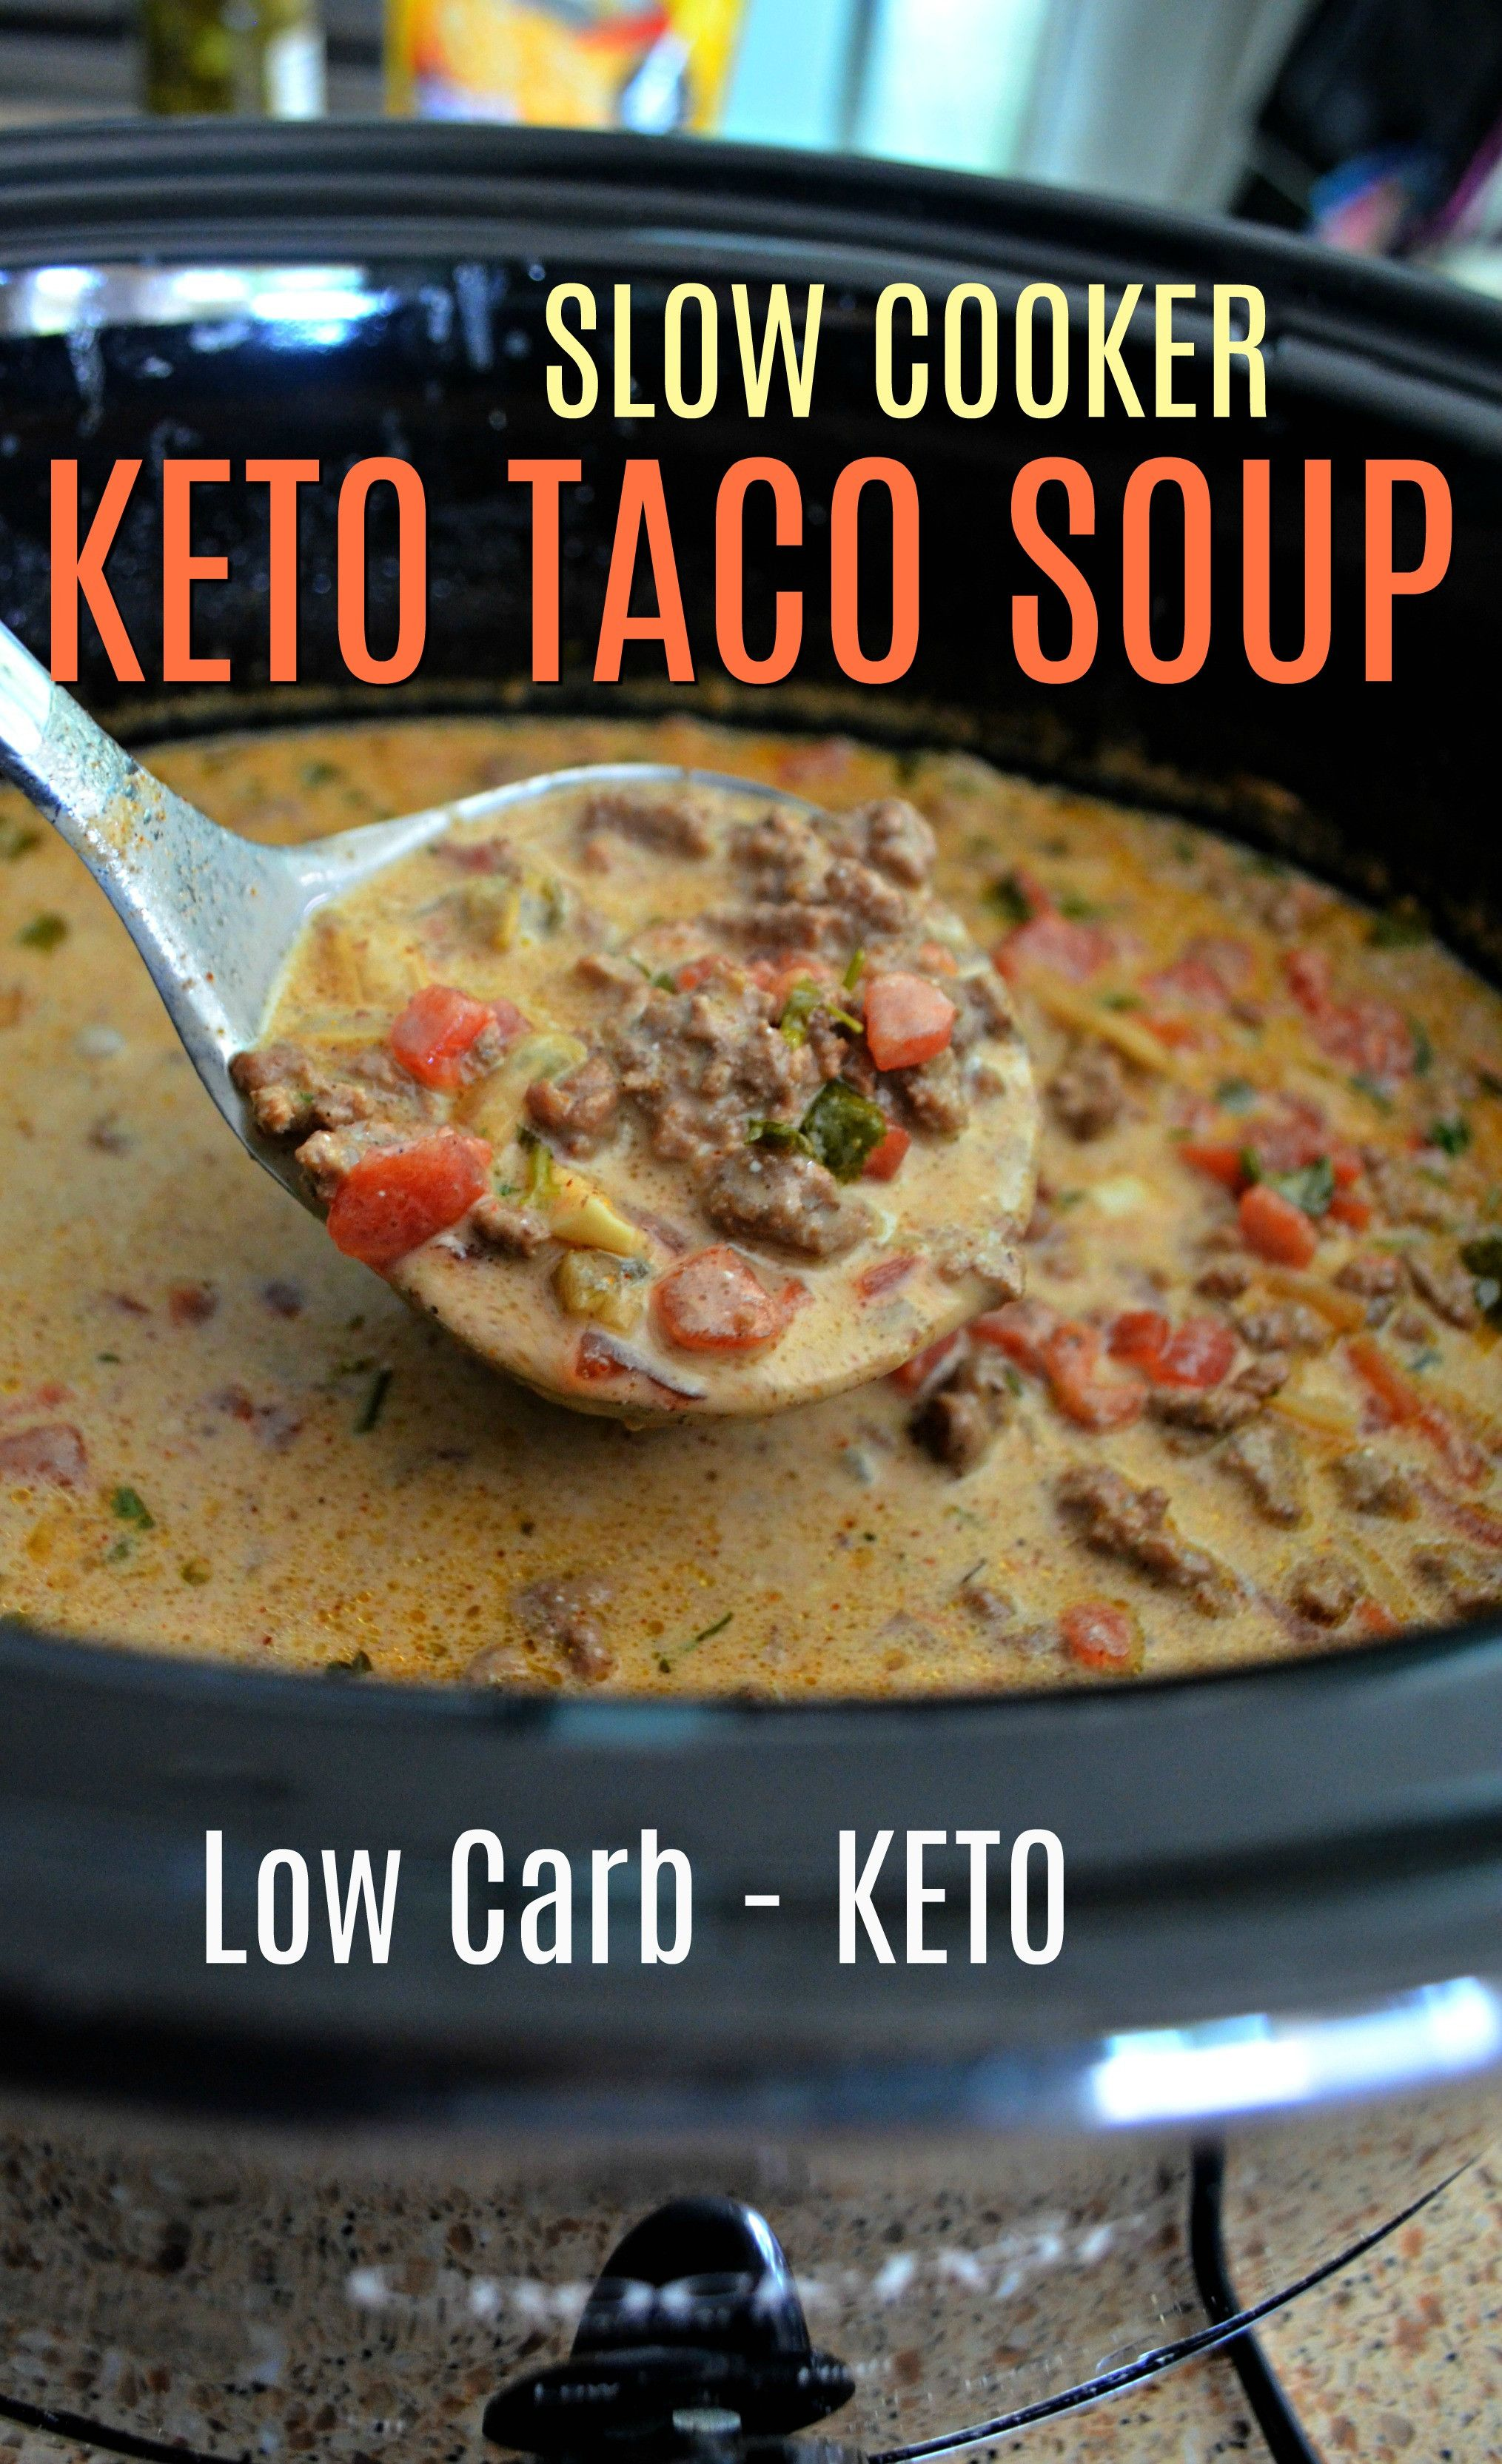 Make the BEST Keto Taco Soup in Your Crockpot